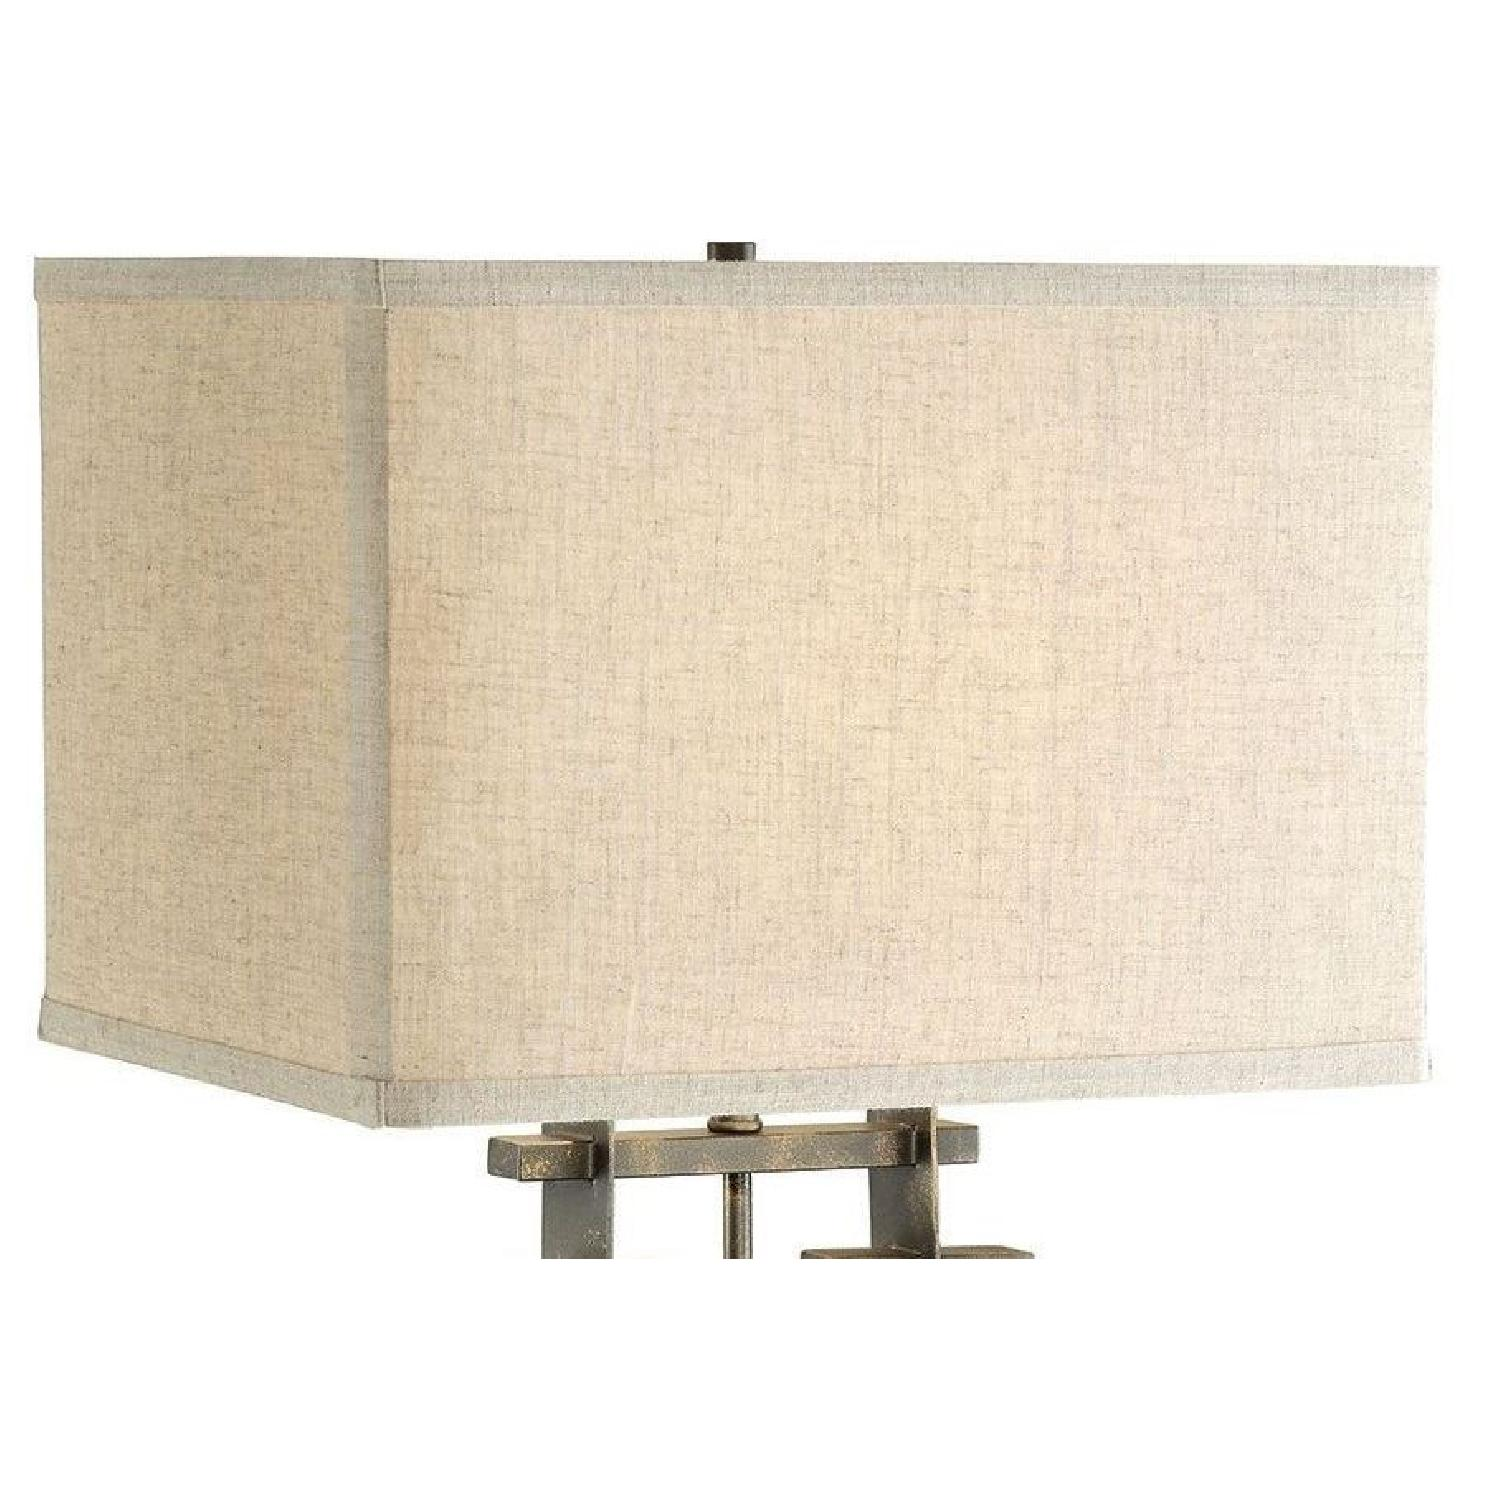 Table Lamp w/ Perpendicular Lines in an Architectural Frame - image-6